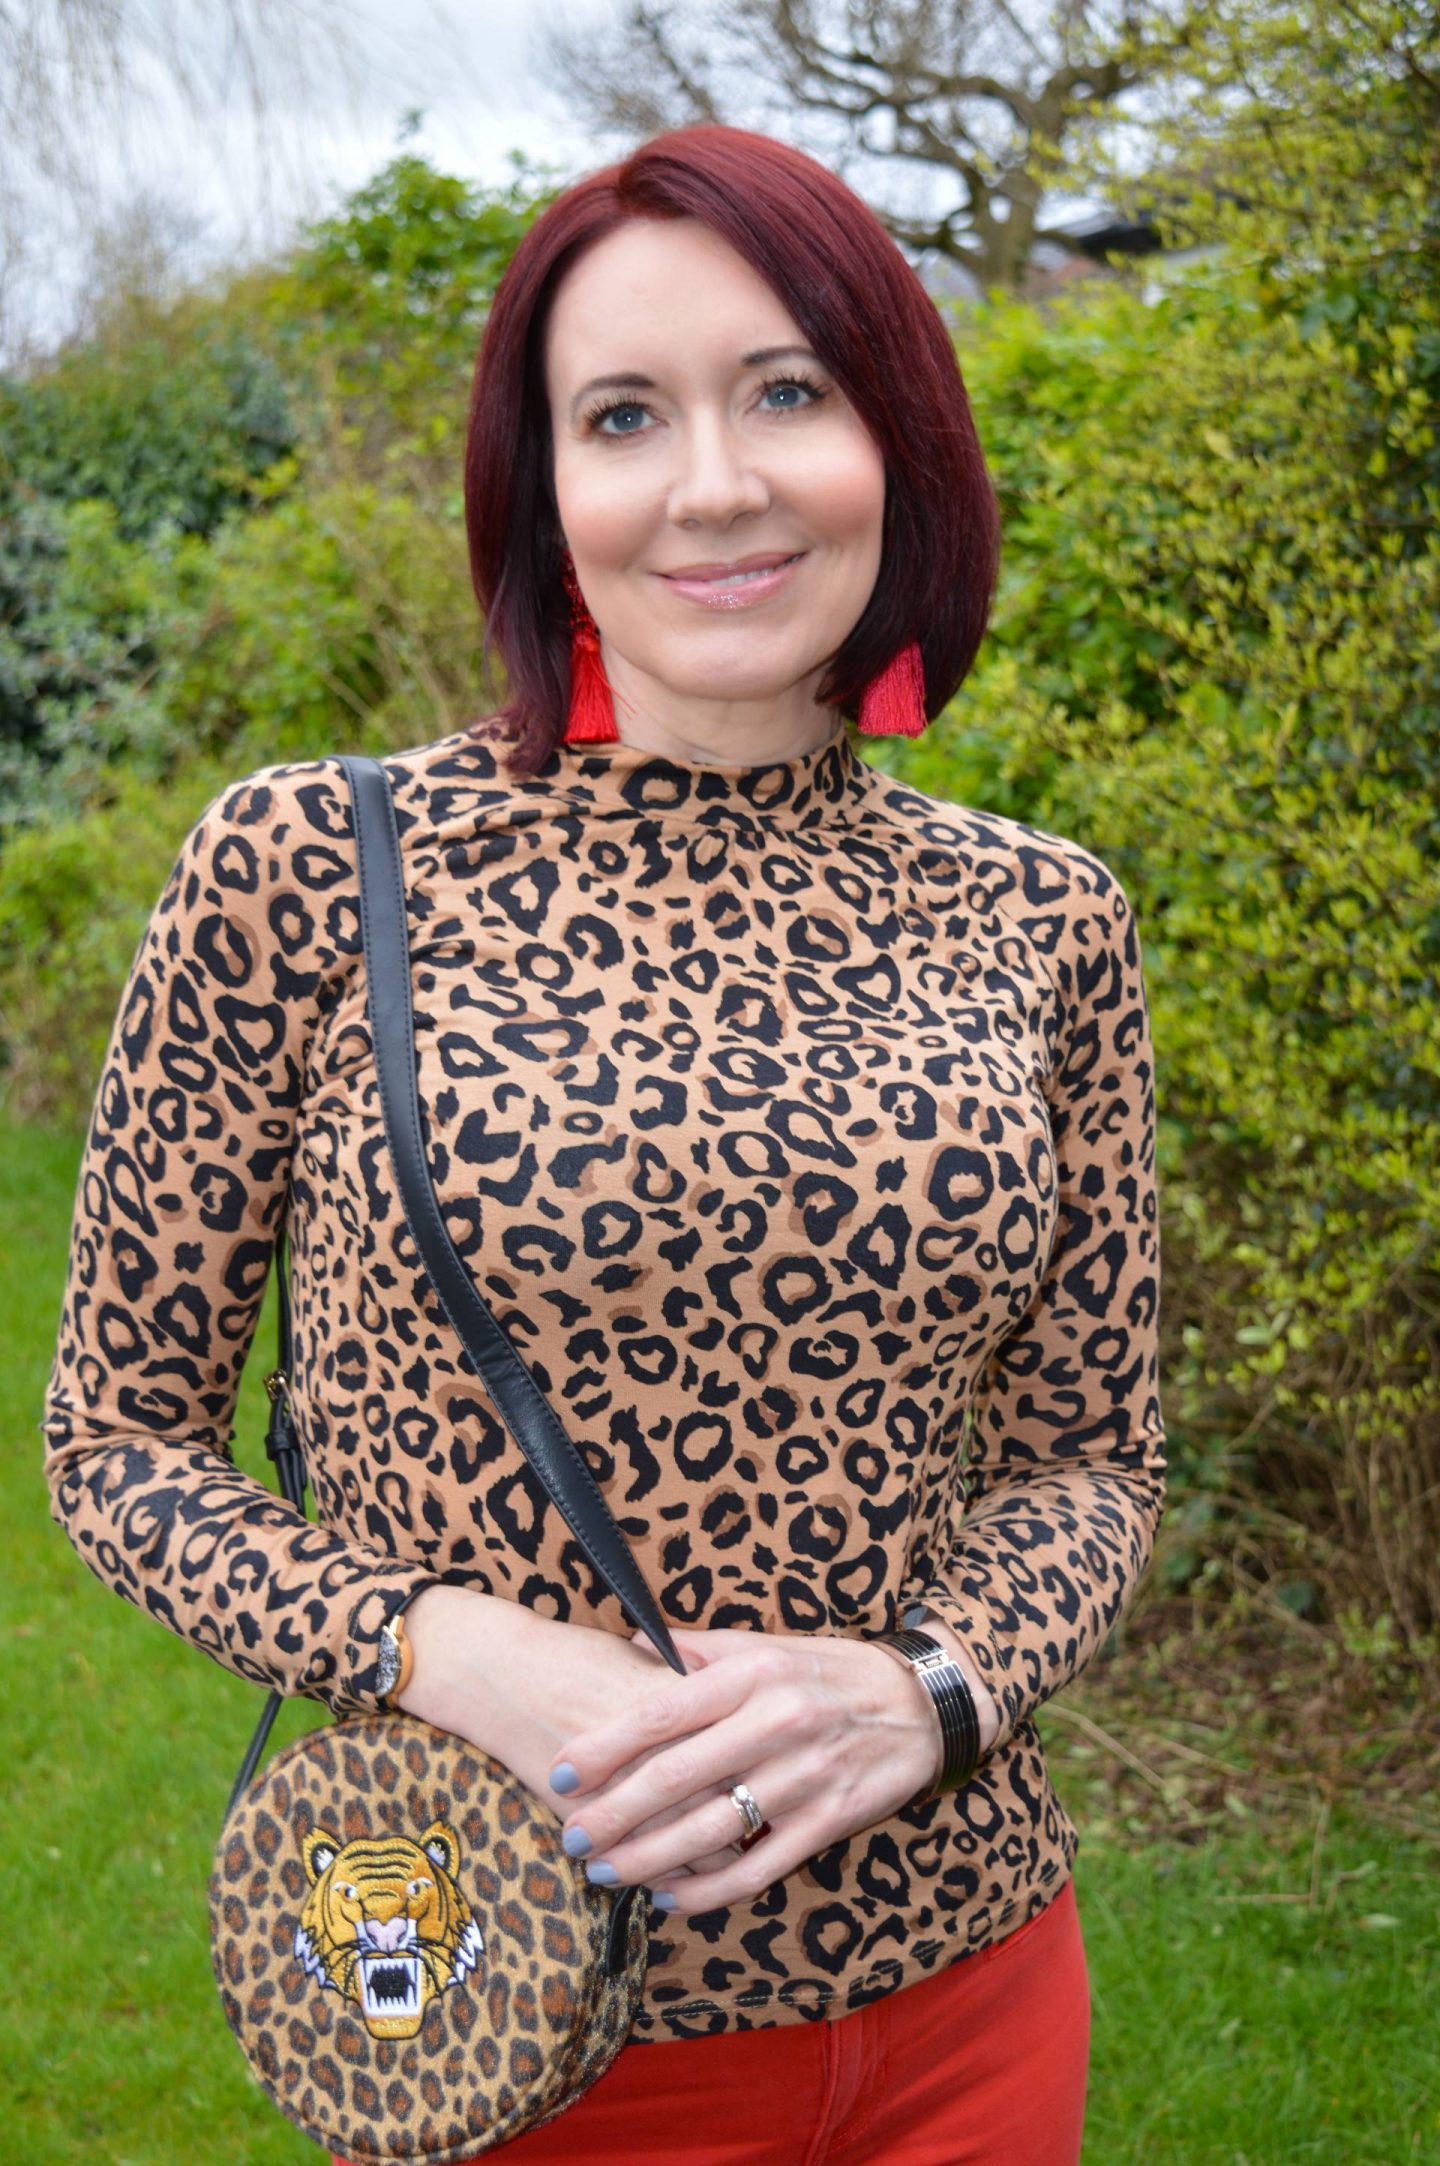 Red Herring leopard print top, Skinny Dip leopard print bag